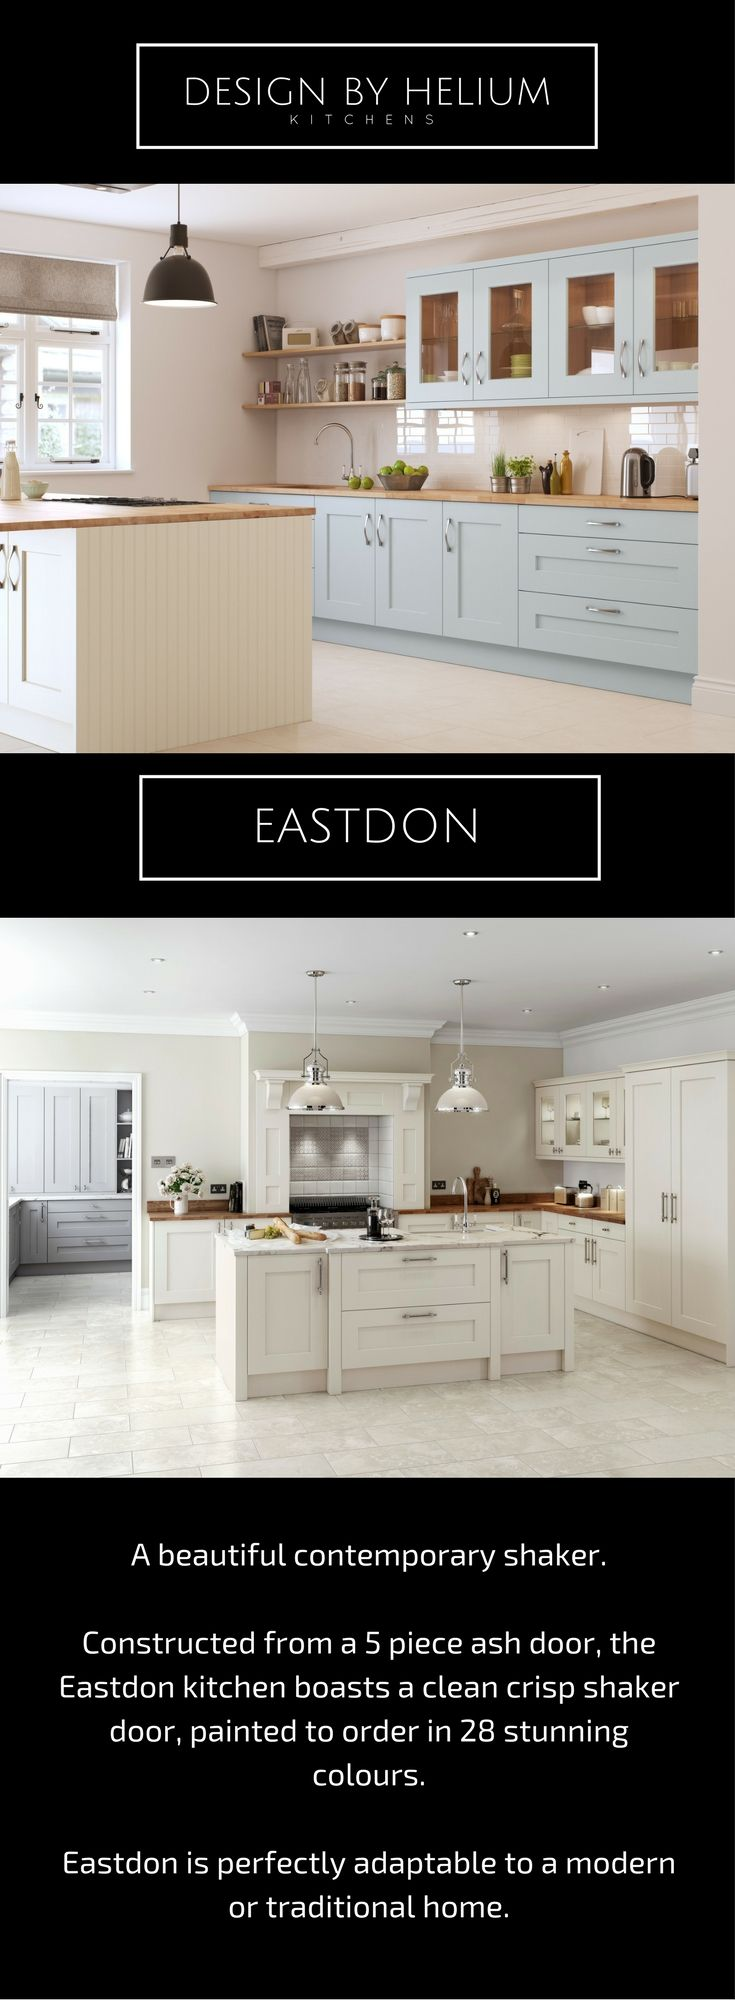 EASTDON is our beautiful painted shaker kitchen